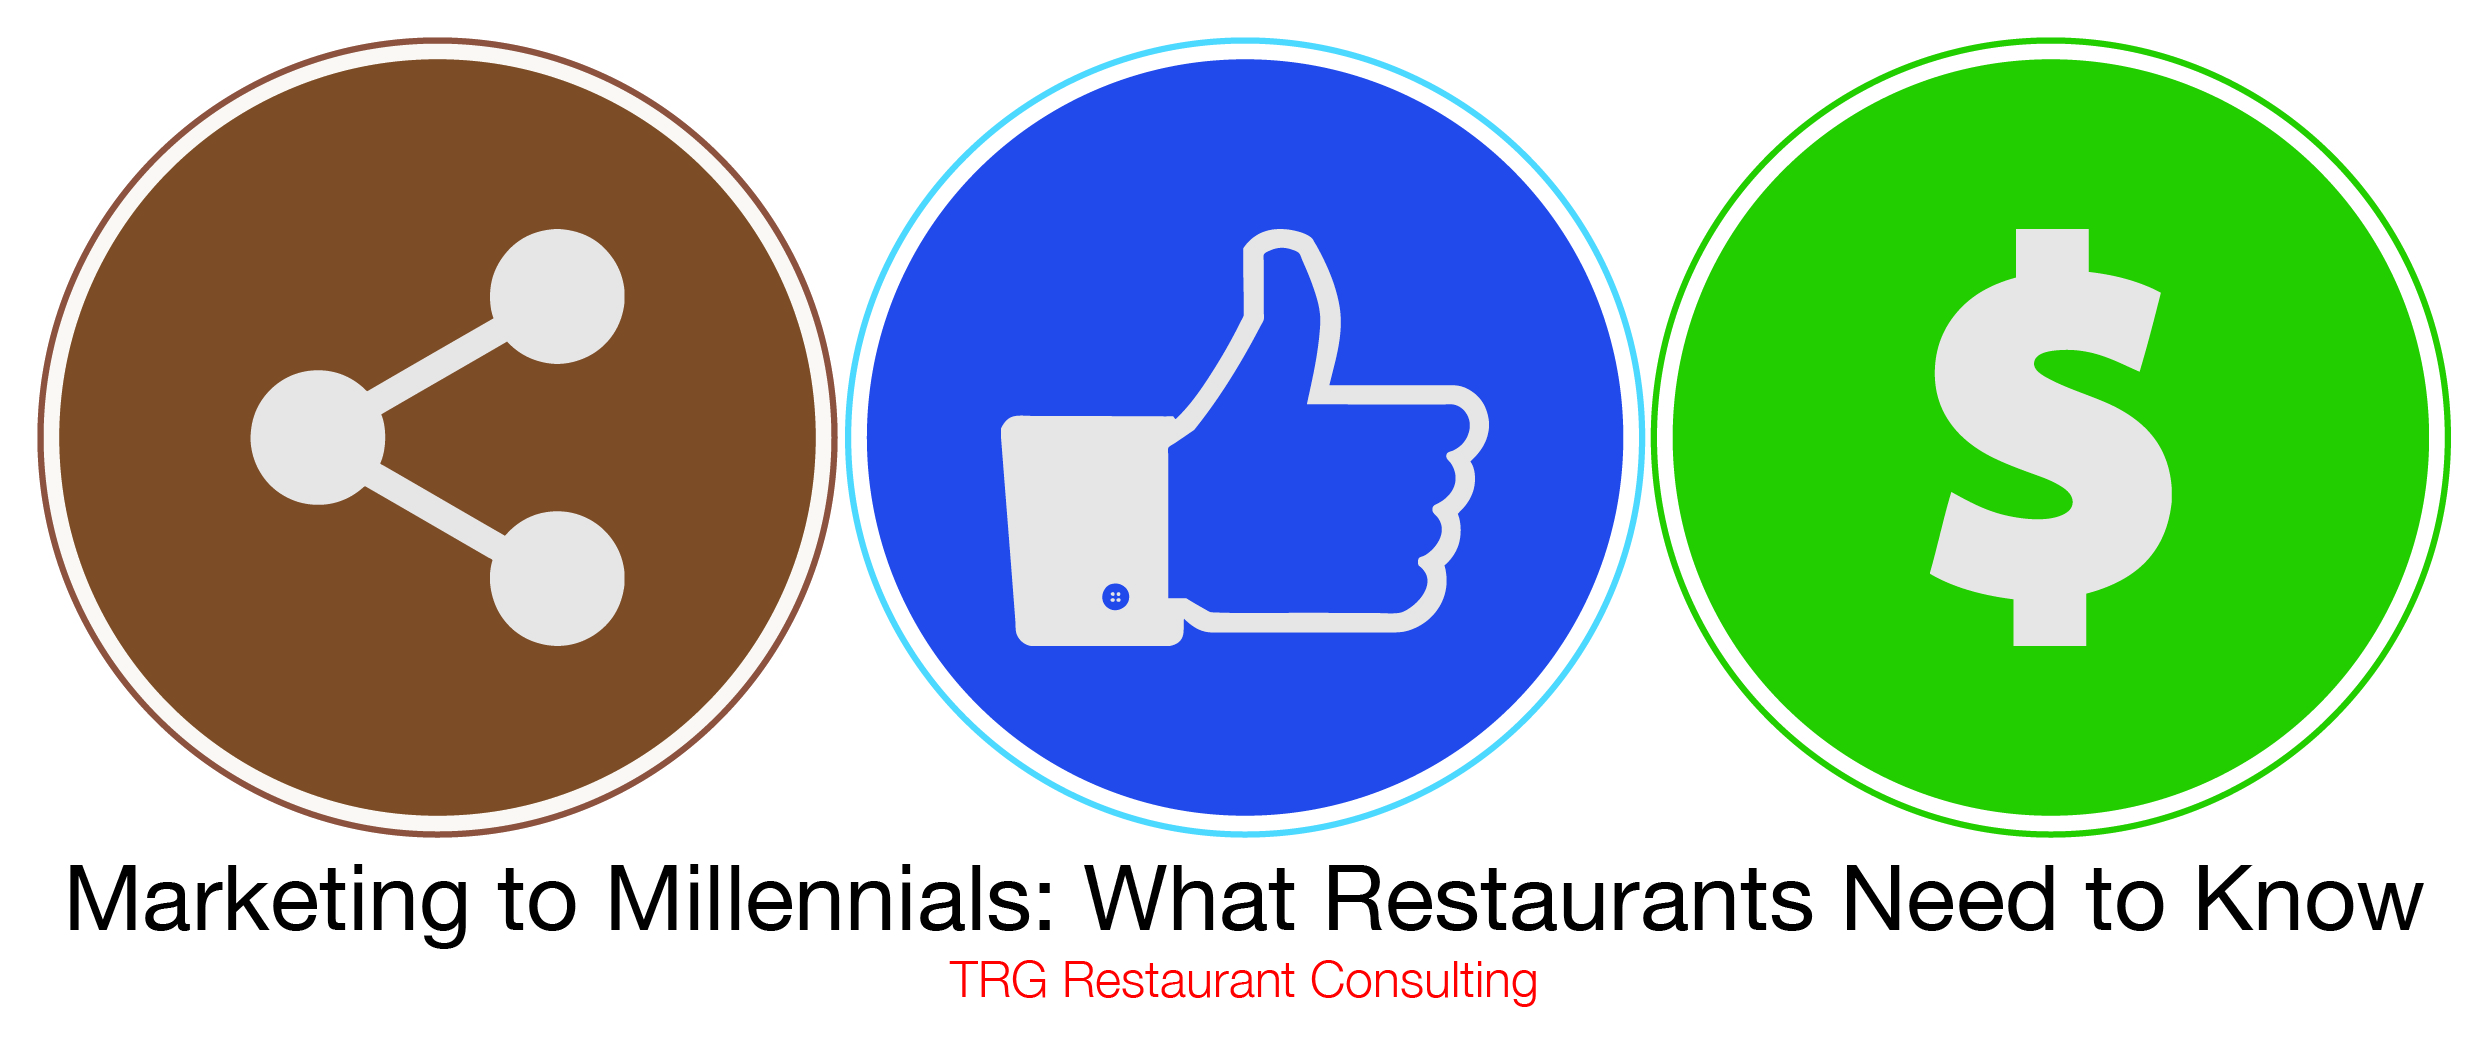 Millennial Marketing for Restaurants